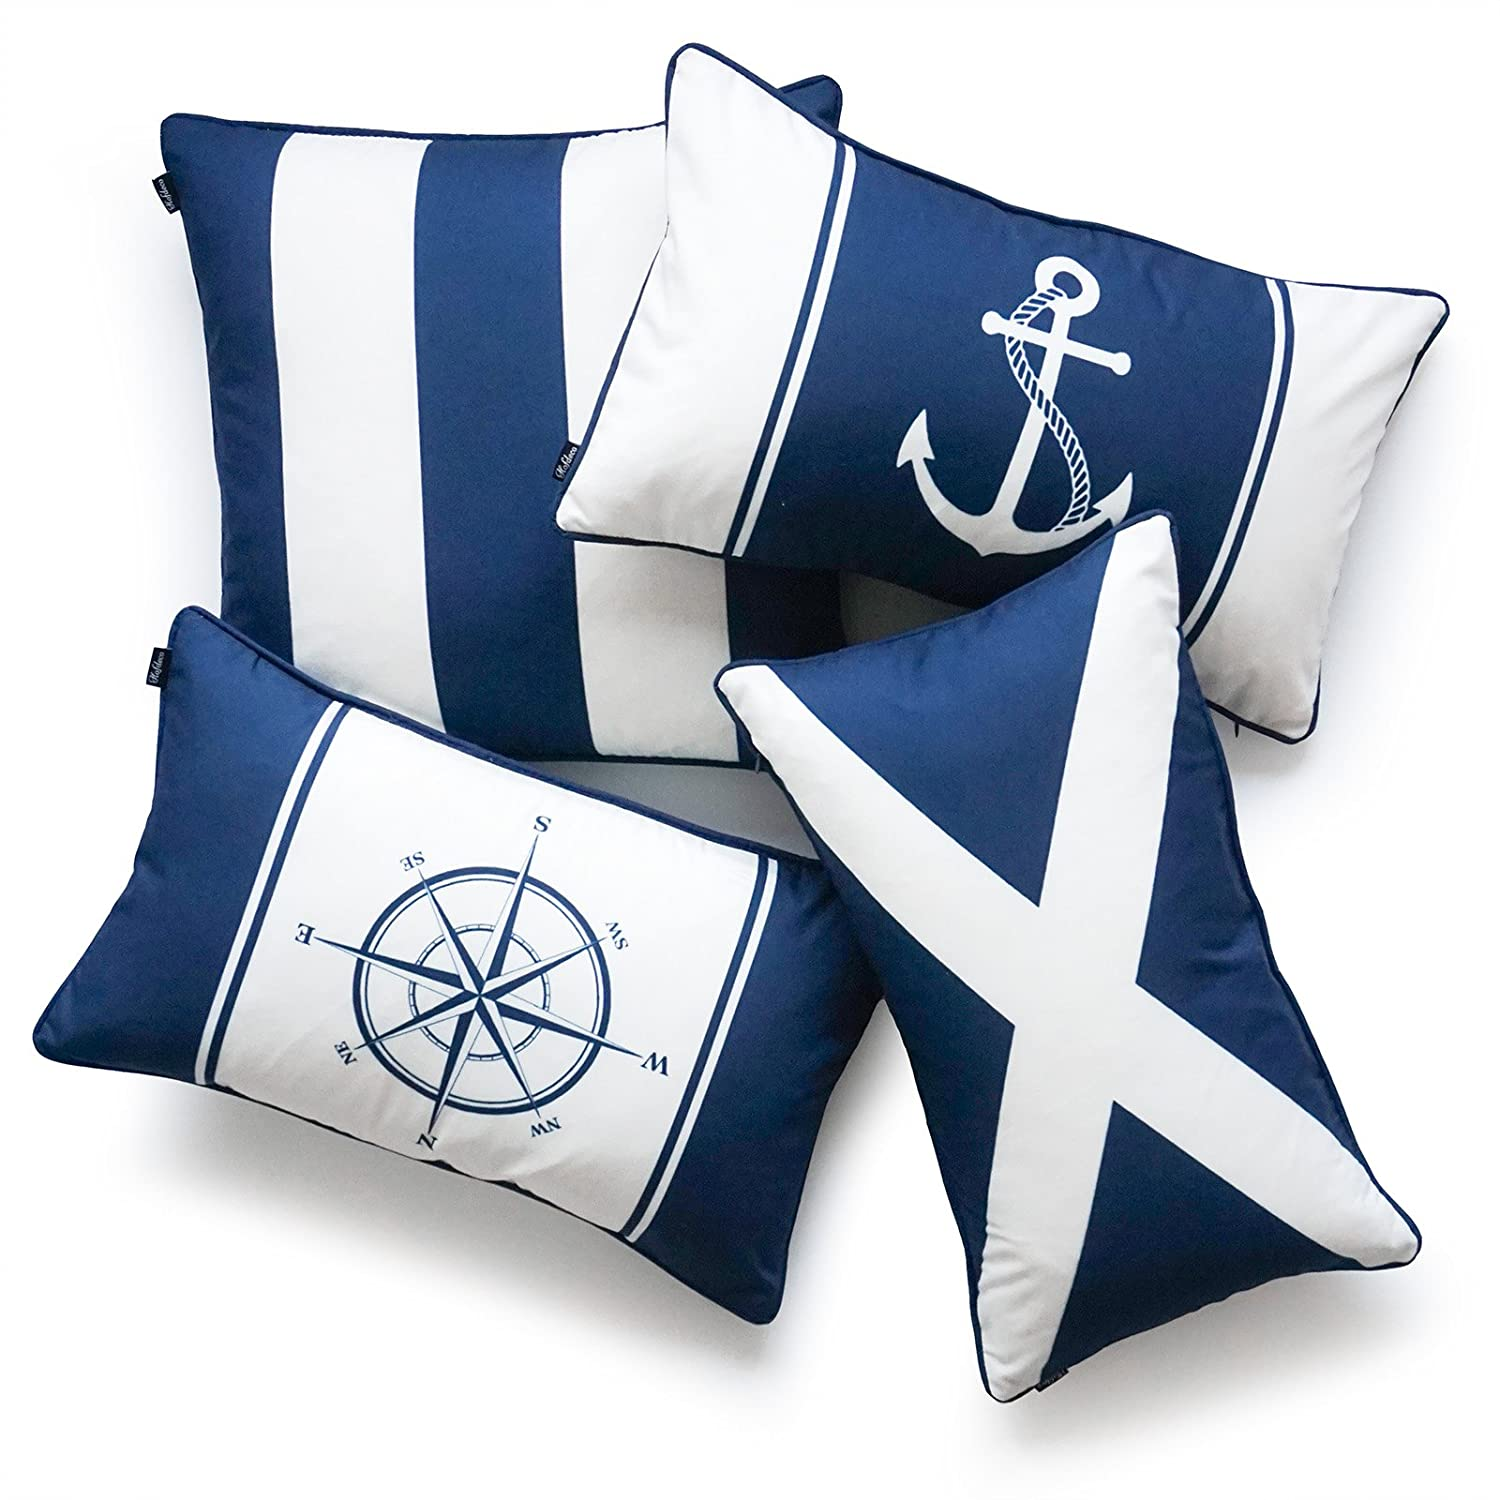 Hofdeco Nautical Indoor Outdoor Pillow Cover ONLY, Water Resistant for Patio Lounge Sofa, Navy Blue Flag Anchor Compass Stripes, 18 x18 12 x20 , Set of 4